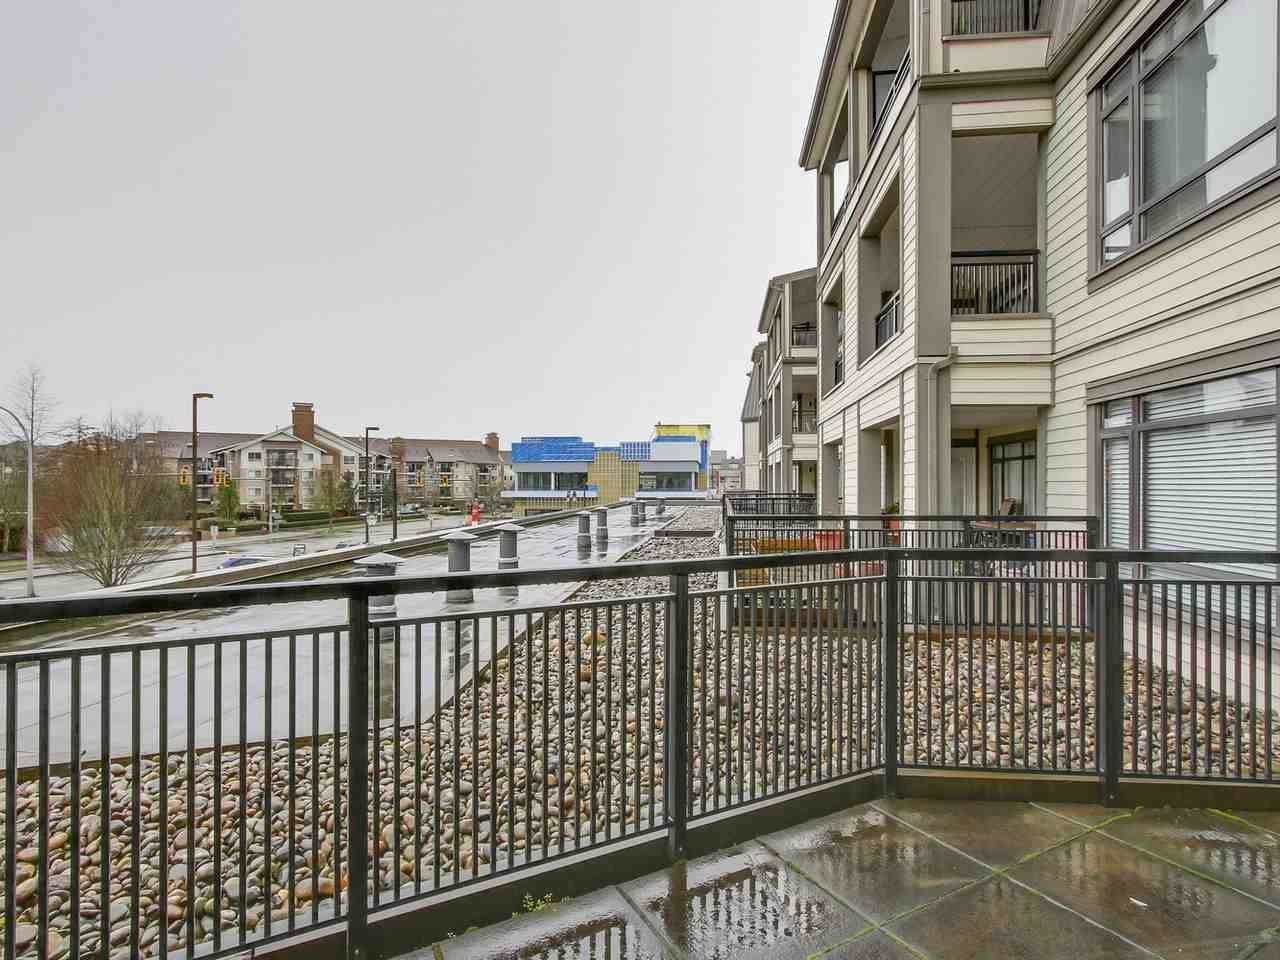 Photo 15: Photos: 226 8880 202 Street in Langley: Walnut Grove Condo for sale : MLS® # R2234850